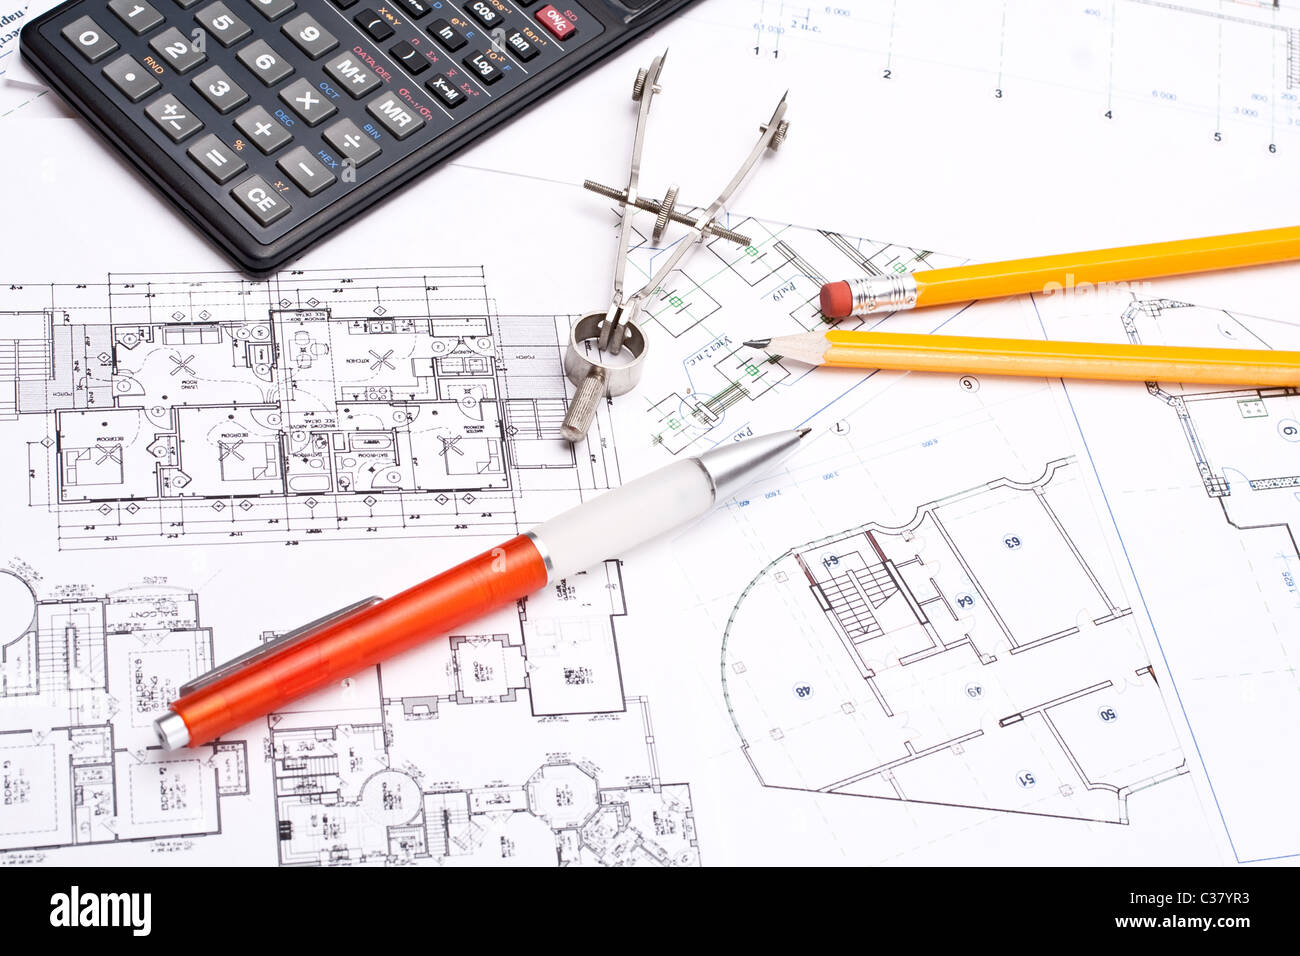 engineering and architecture drawings with pencil - Stock Image